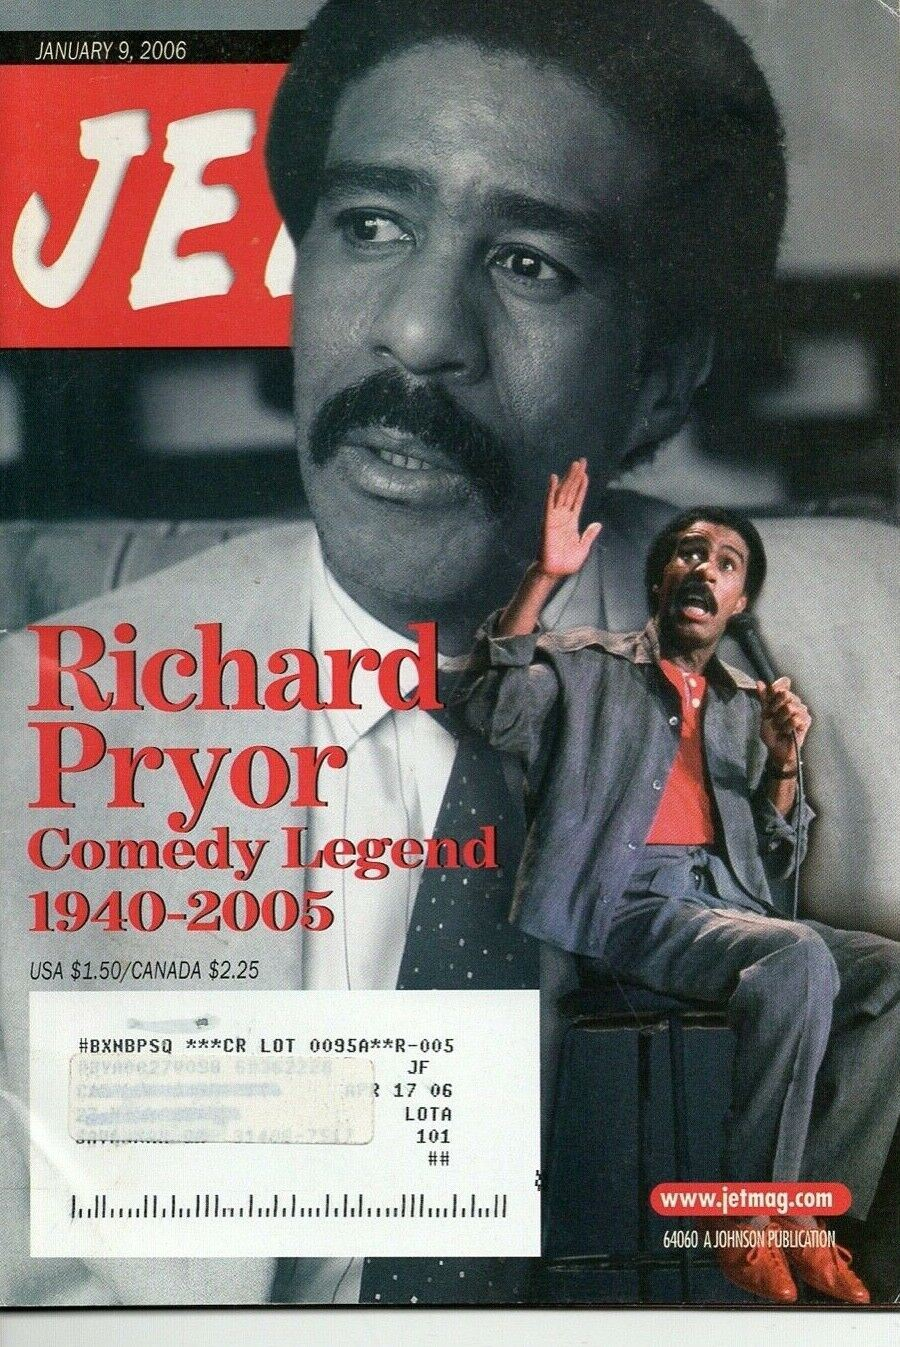 01 09 2006 JET MAGAZINE Richard Pryor